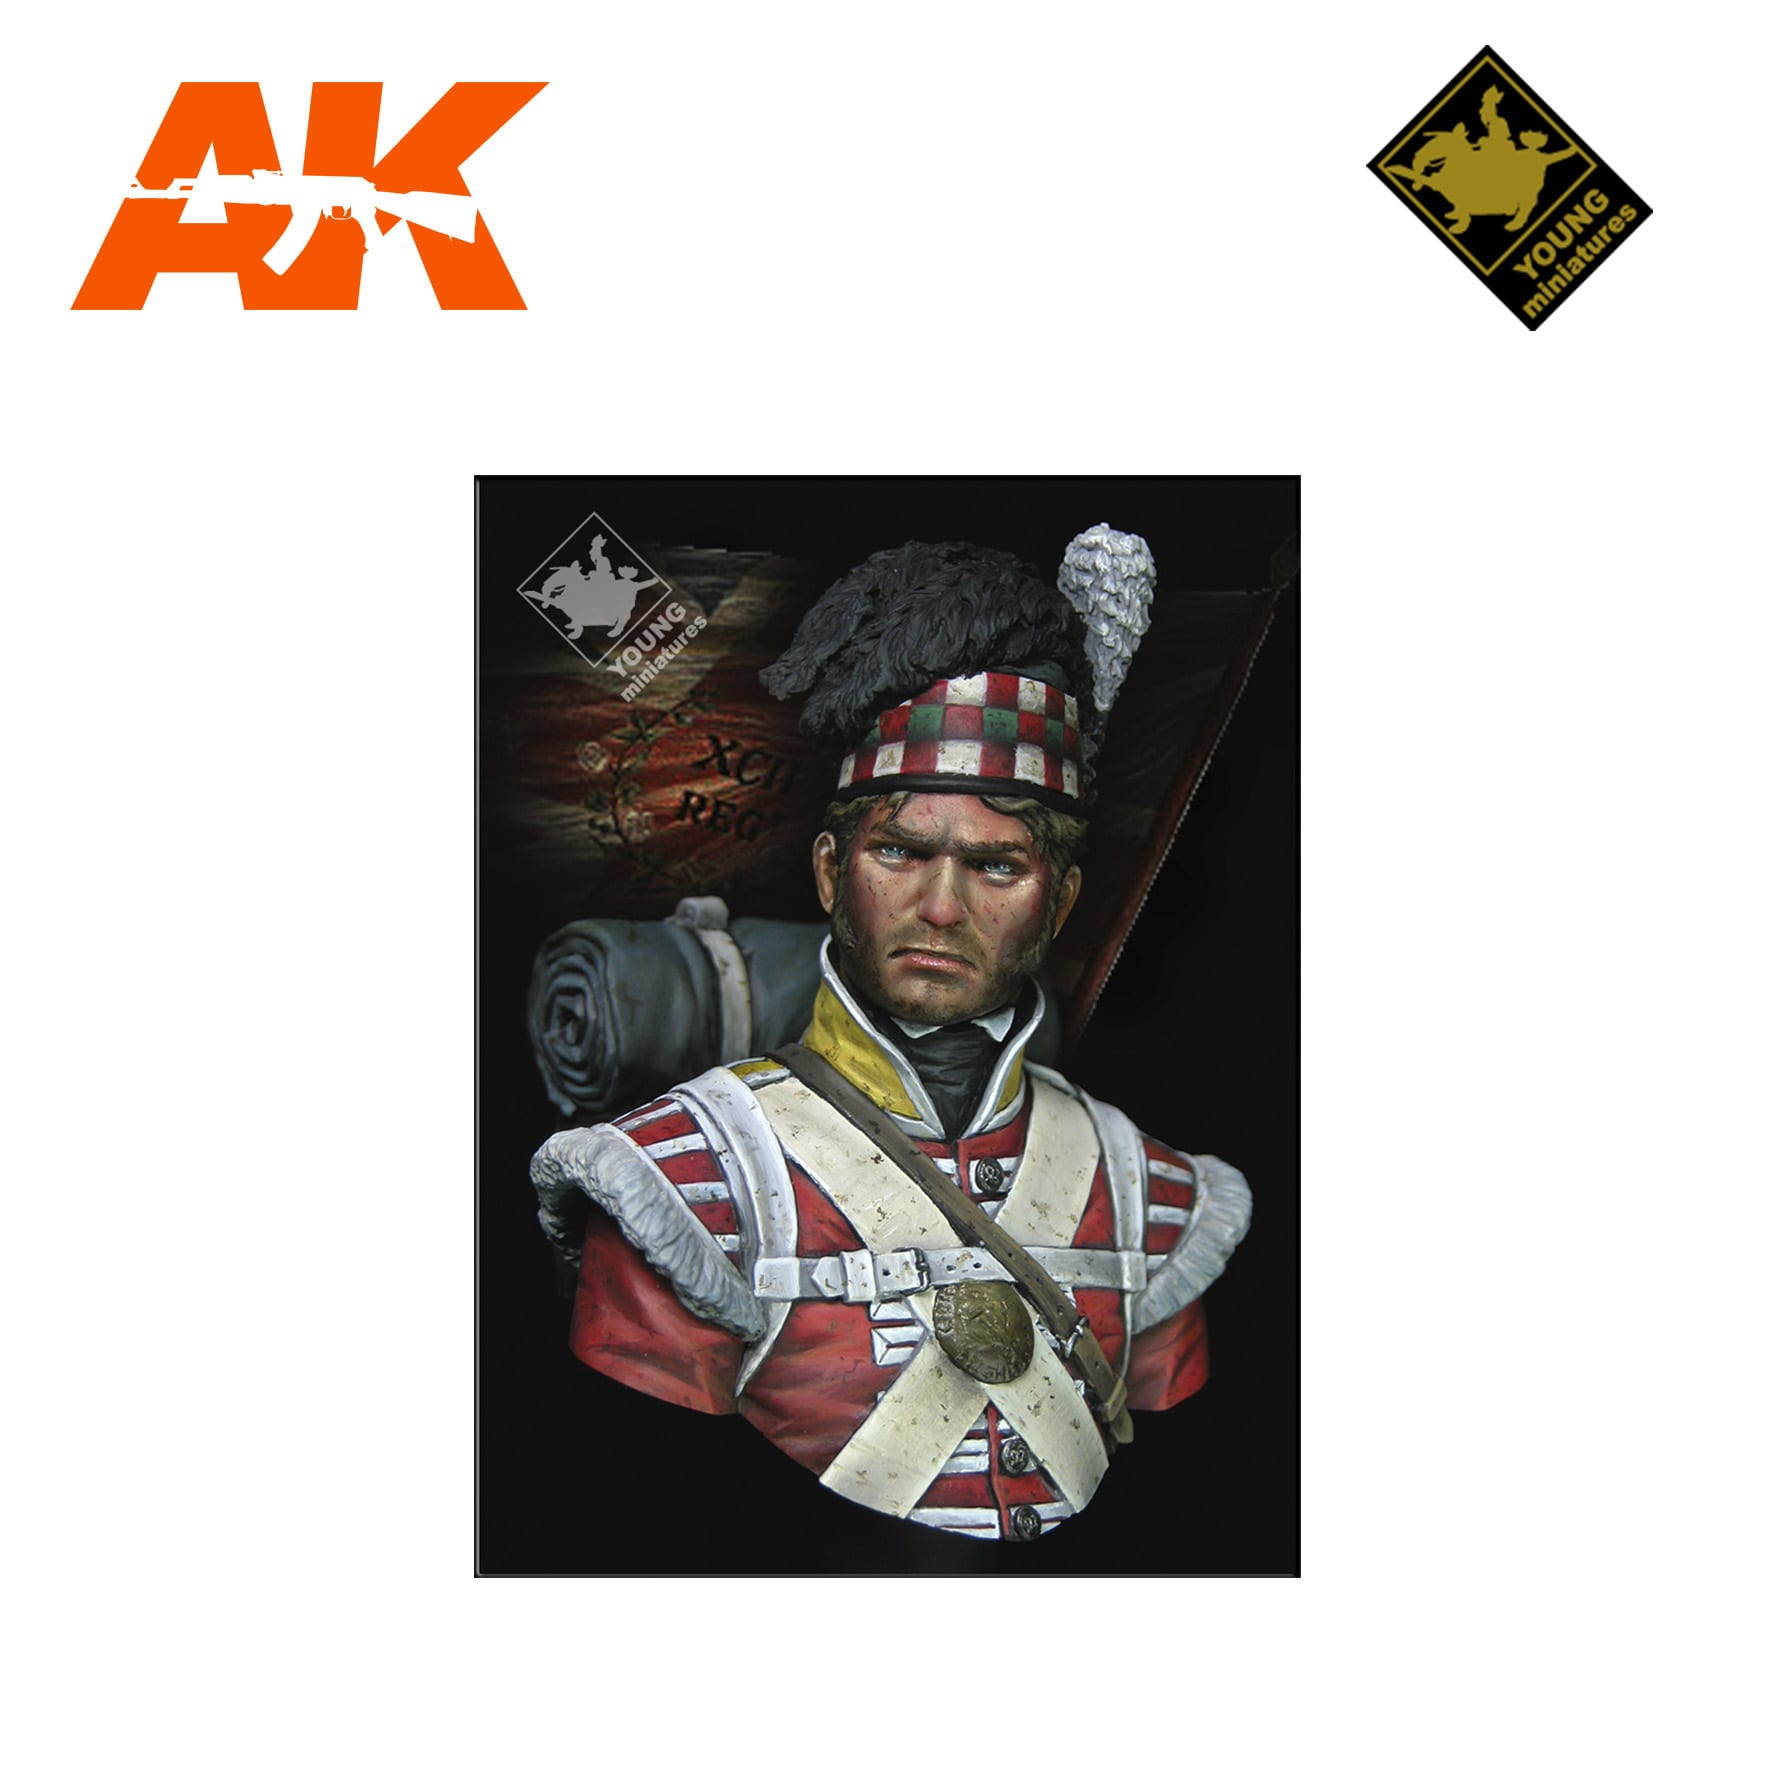 YM YH1826 THE 92ND GORDON HIGHLANDERS WATERLOO 1815 AK-INTERACTIVE YOUNG MINIATURES